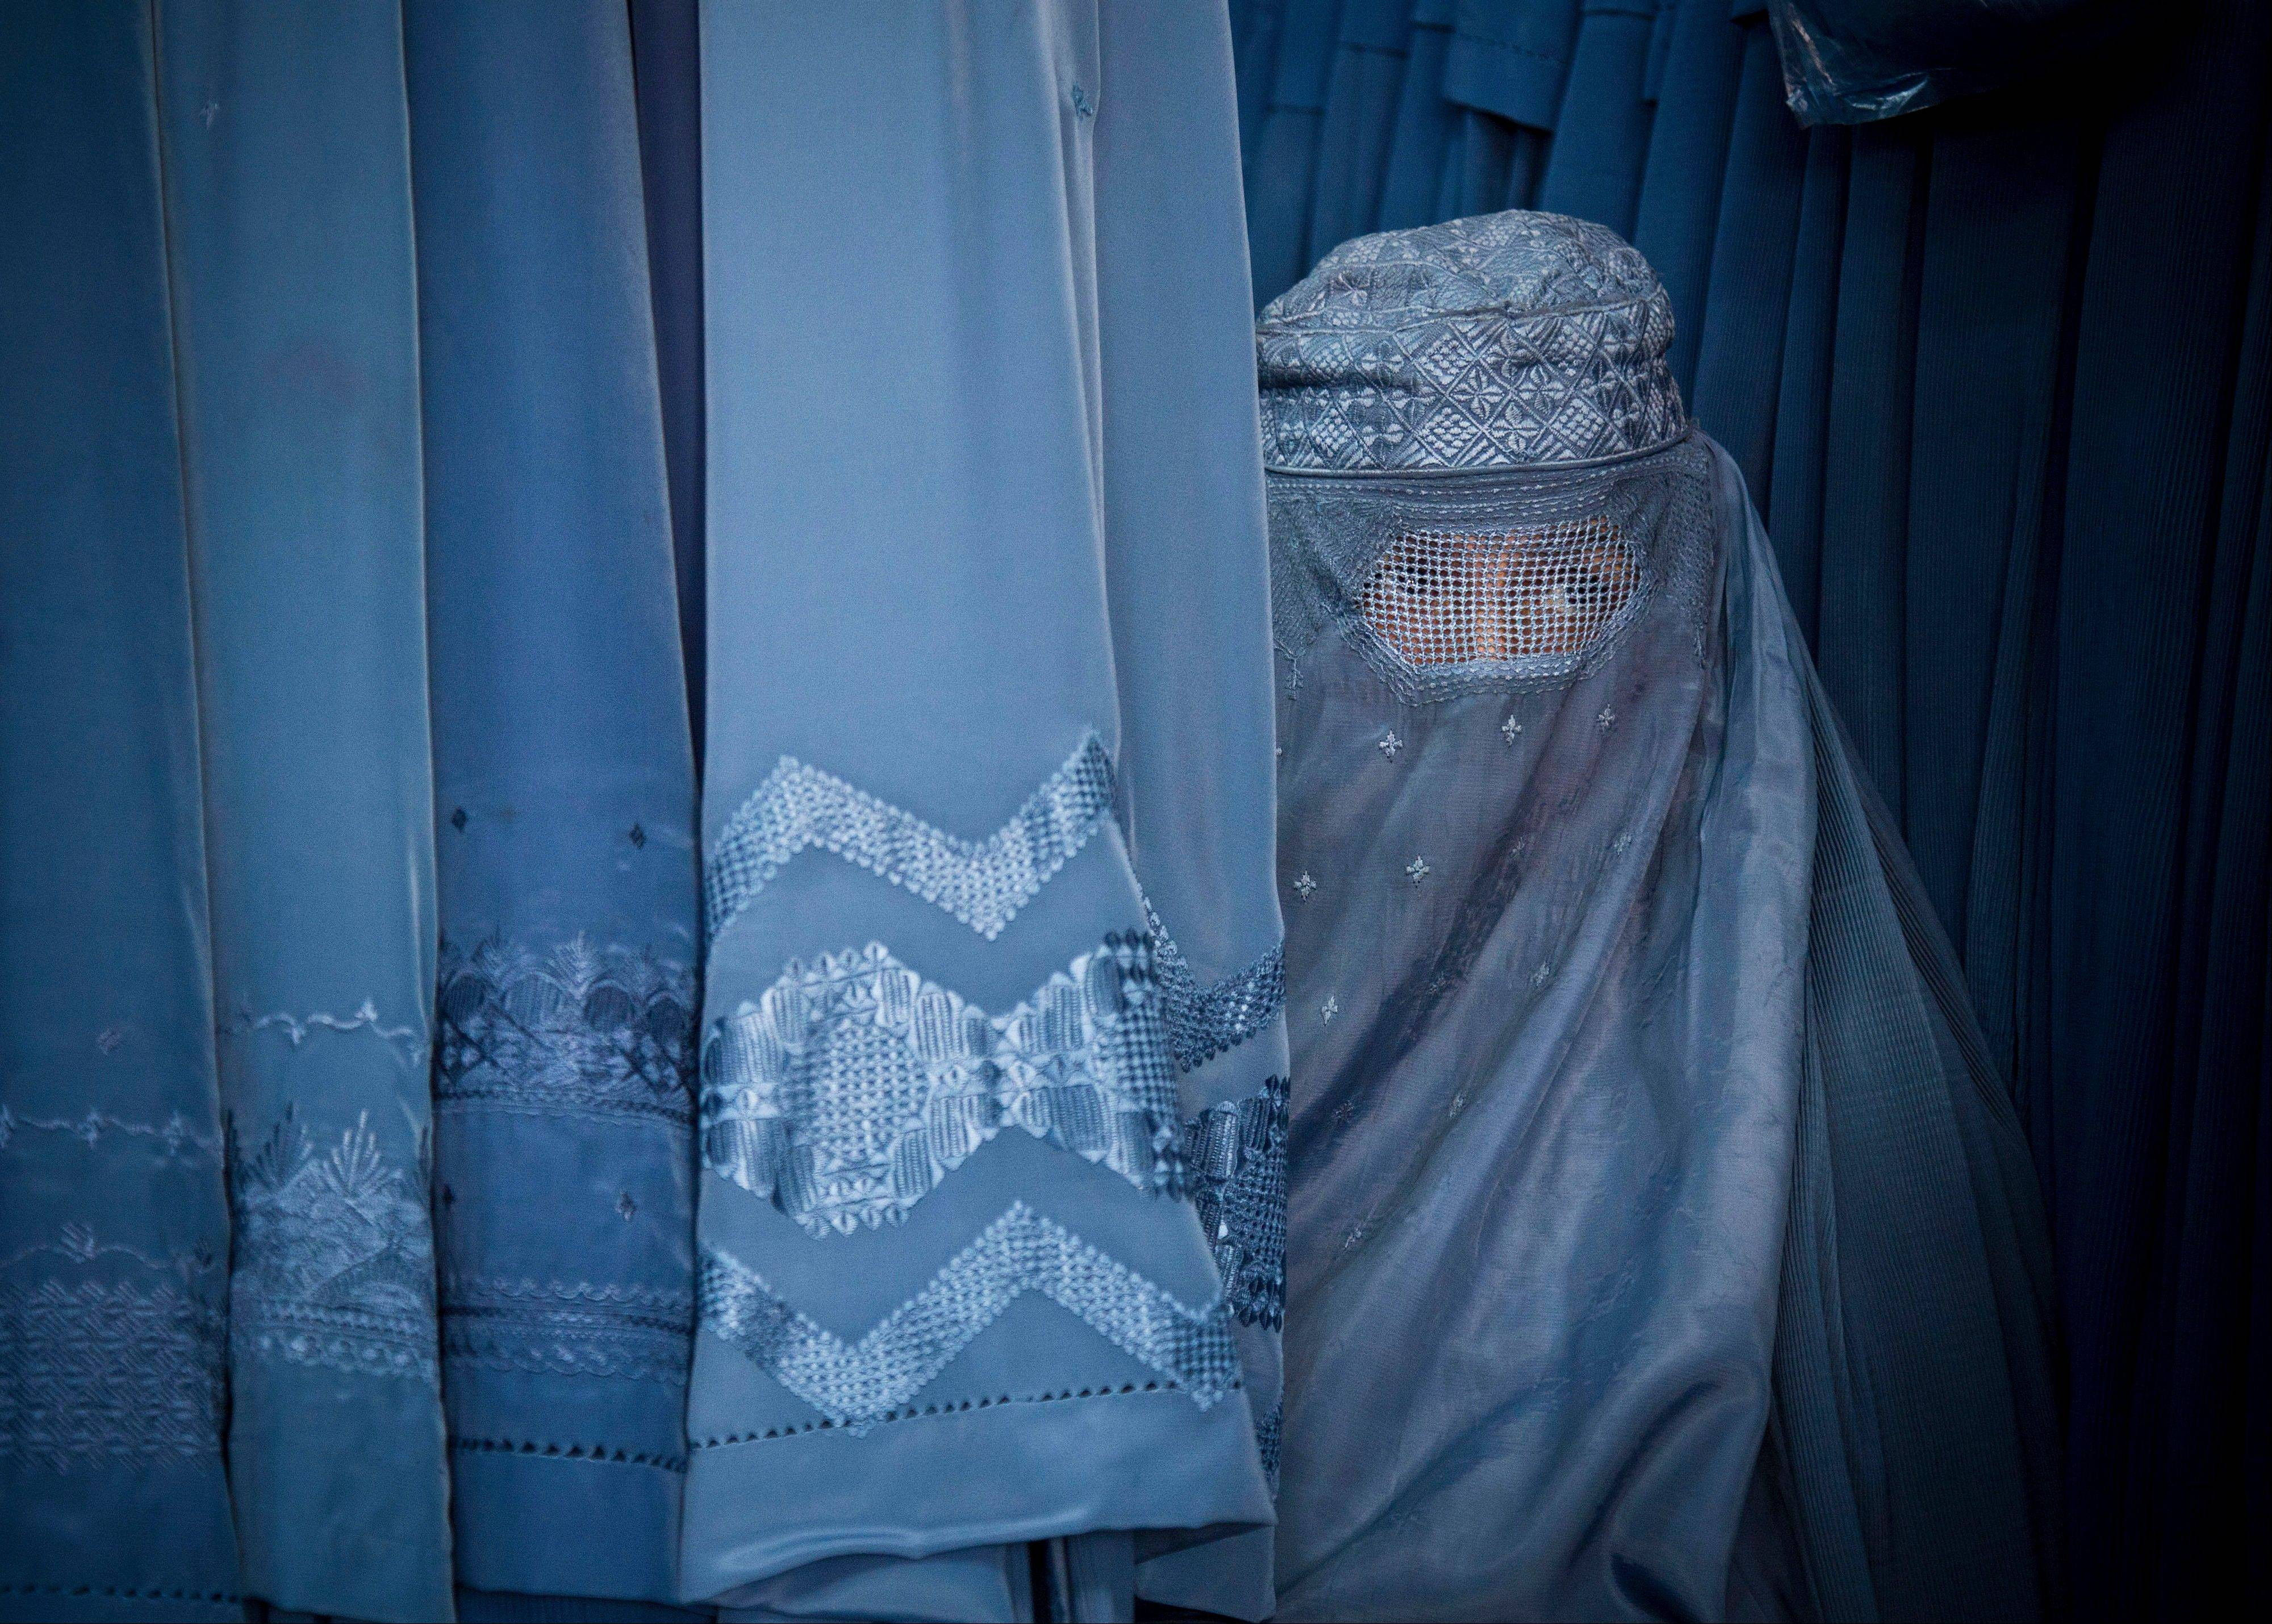 An Afghan woman peers through the eye slit of her burqa as she waits to try on a new burqa in shop in the old town of Kabul, Afghanistan. Conservative religious lawmakers in Afghanistan blocked a law on Saturday that aims to protect women's freedoms, with some arguing that parts of it violate Islamic principles or encourage women to have sex outside of marriage.